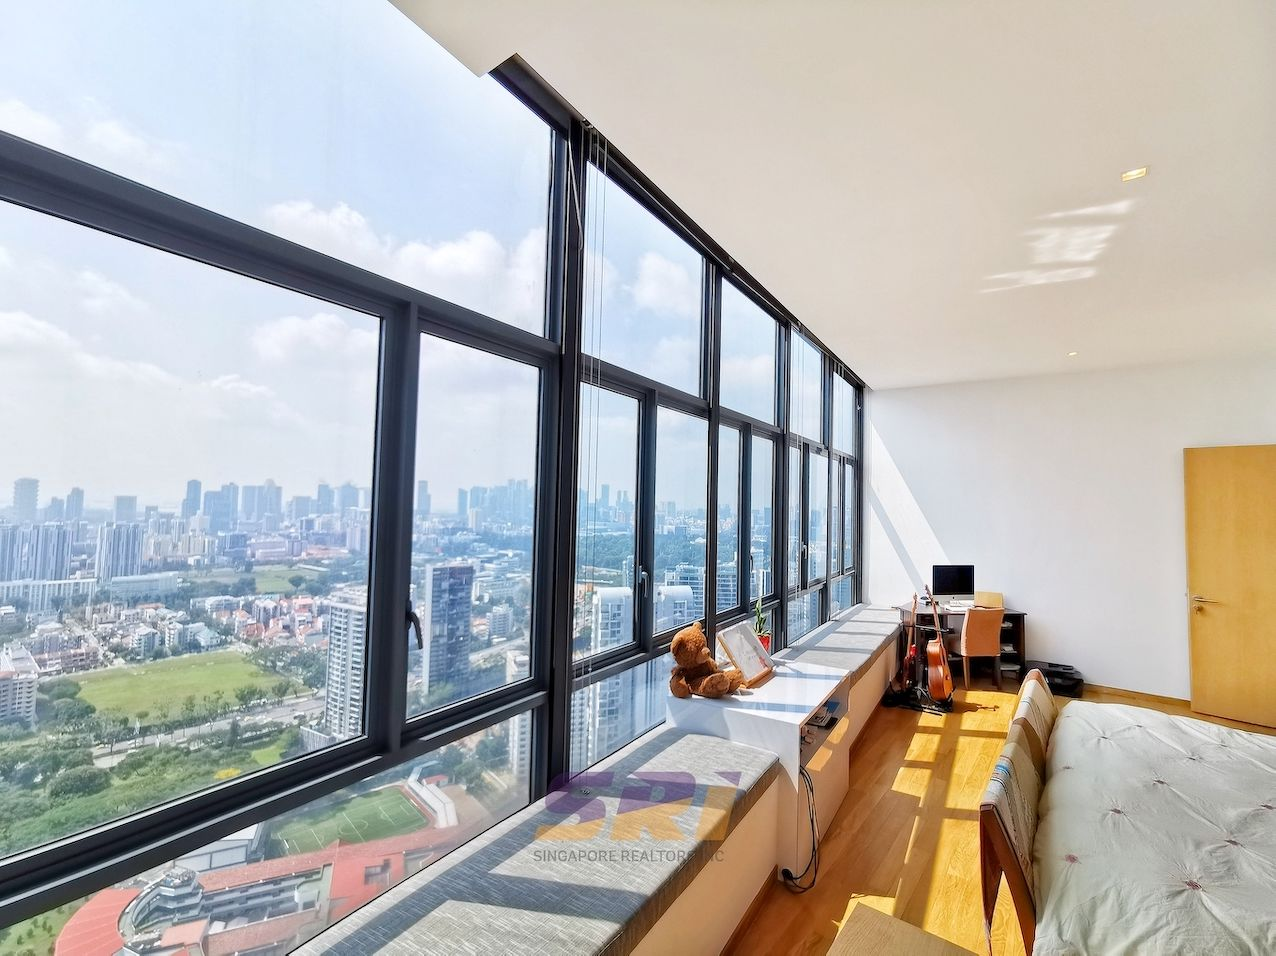 EDGEPROP SINGAPORE - Unblocked view from the master bedroom of the penthouse at Soleil@Sinaran (Photo:SRI)